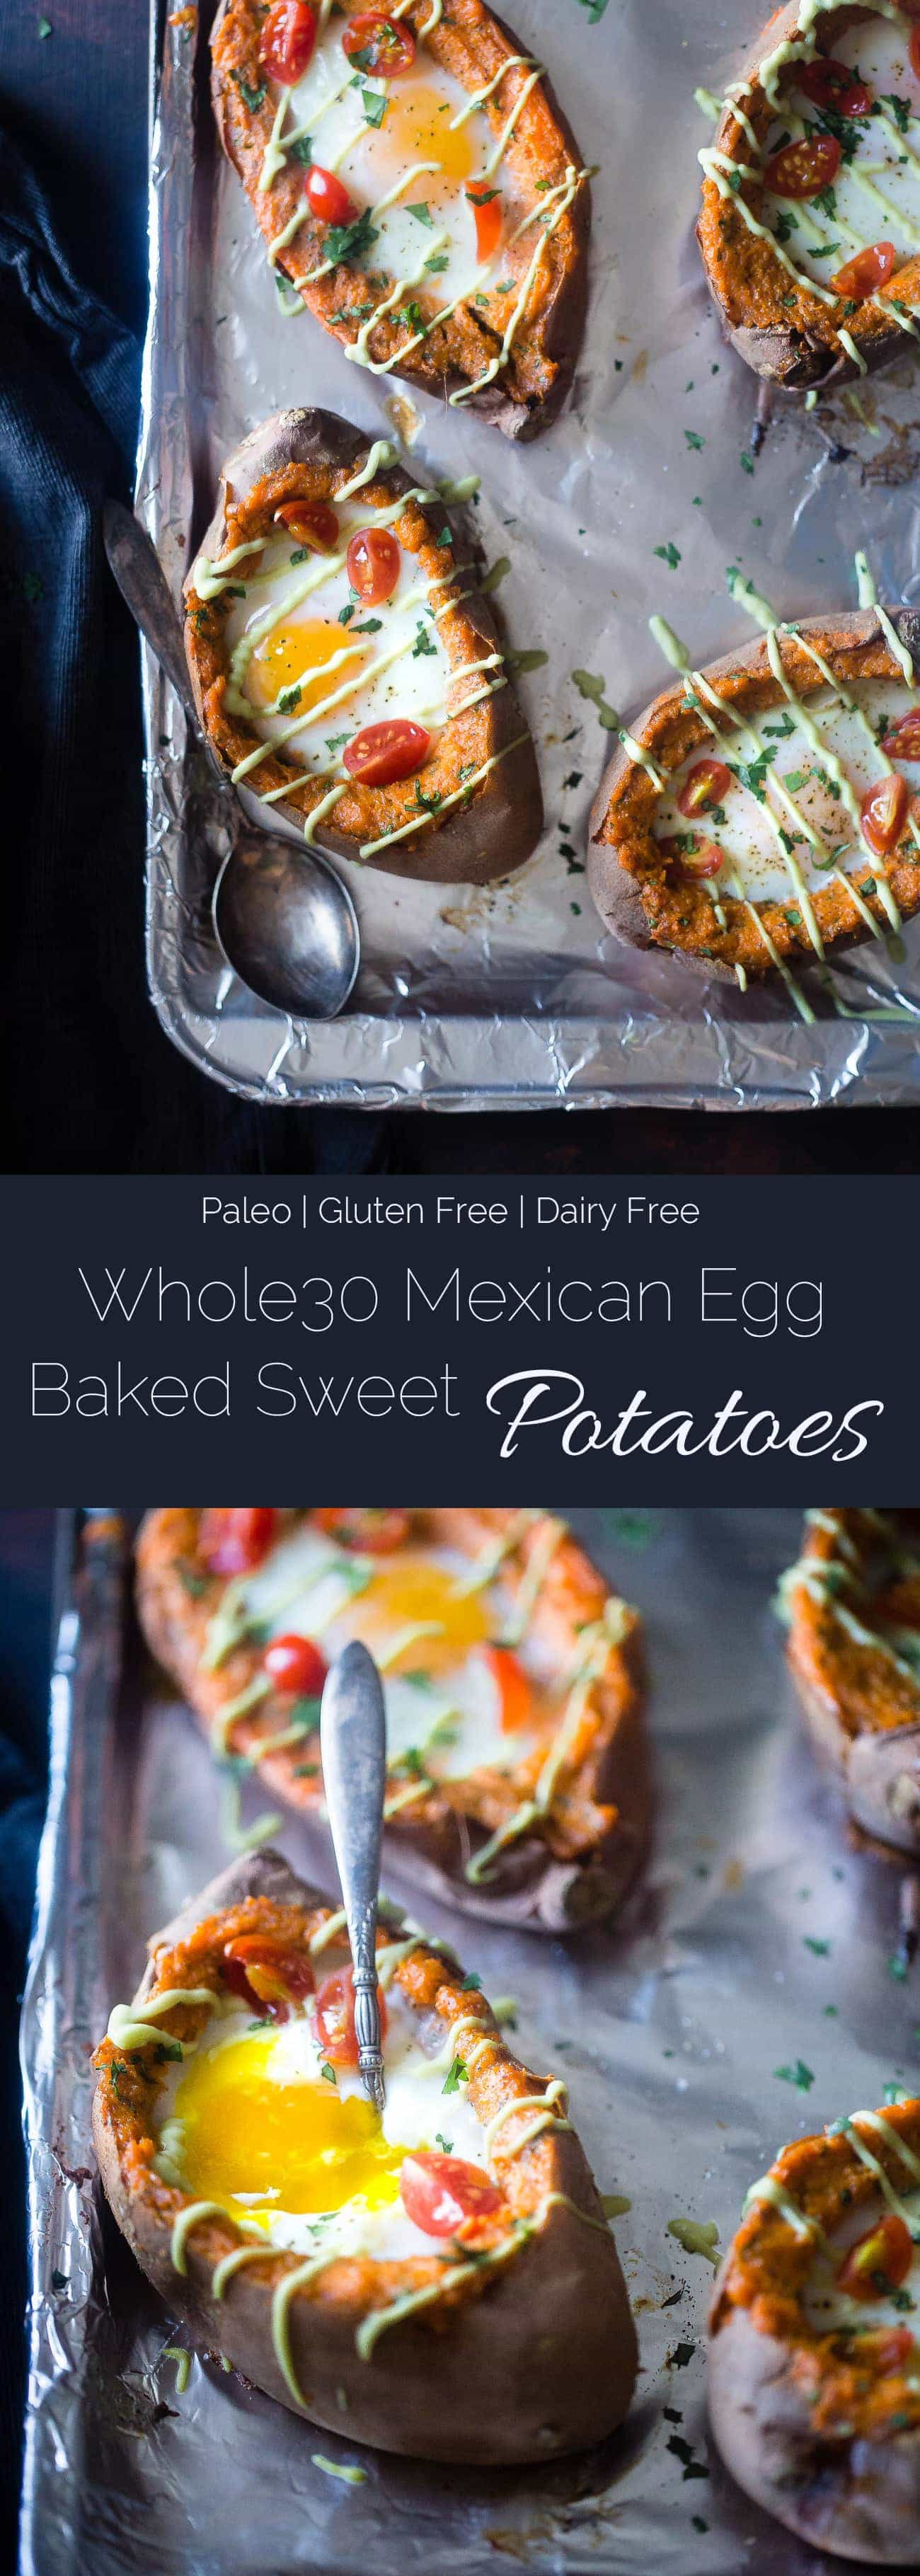 Mexican Stuffed Sweet Potatoes - These Mexican sweet potatoes have a runny egg and a tangy lime avocado sauce! They're a healthy, gluten free and whole30 friendly weeknight meal! | Foodfaithfitness.com | @FoodFaithFit